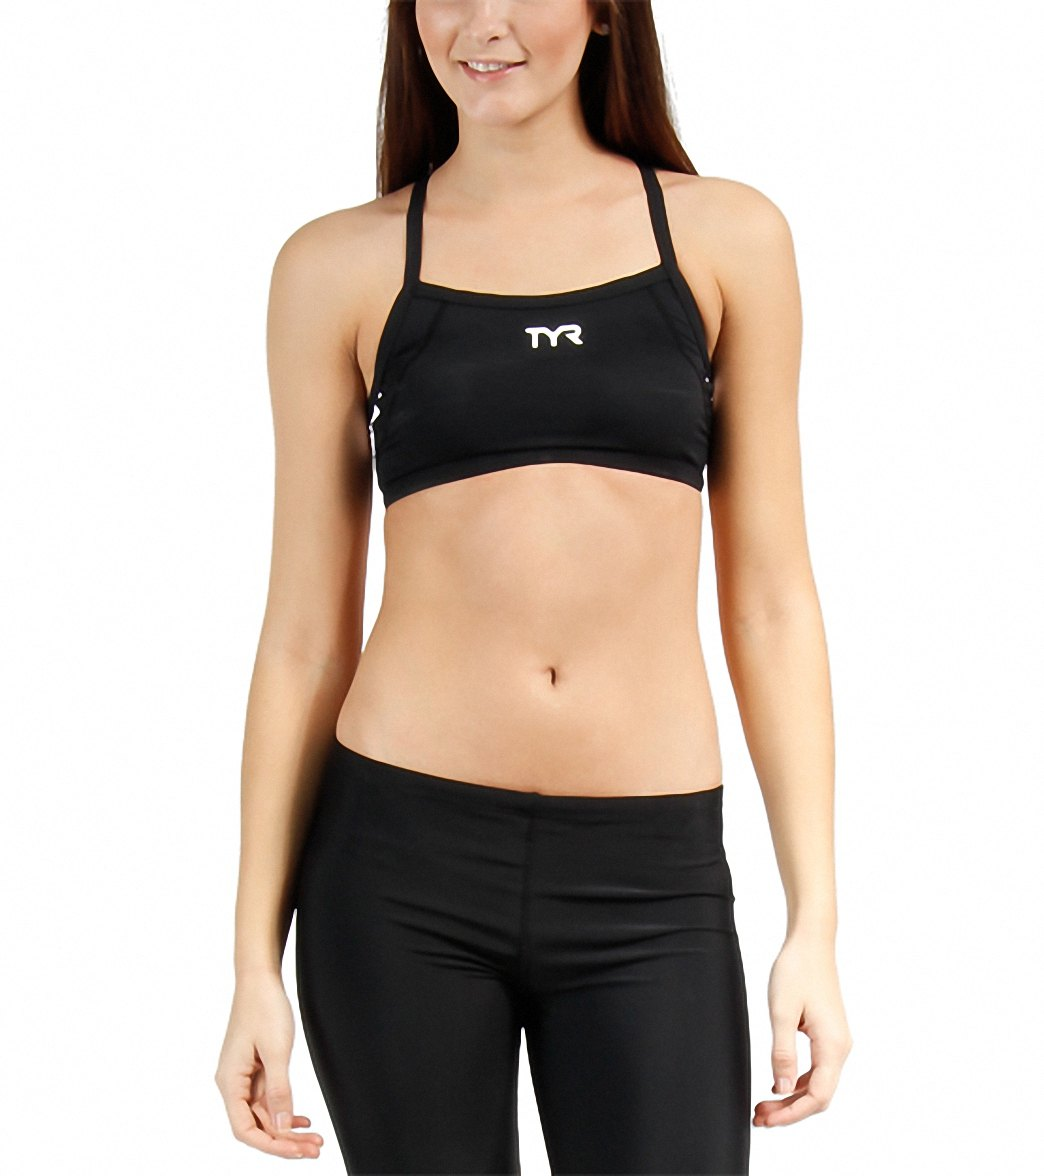 694f372dc83cc TYR Women s Competitor Thin Strap Bra Top at SwimOutlet.com